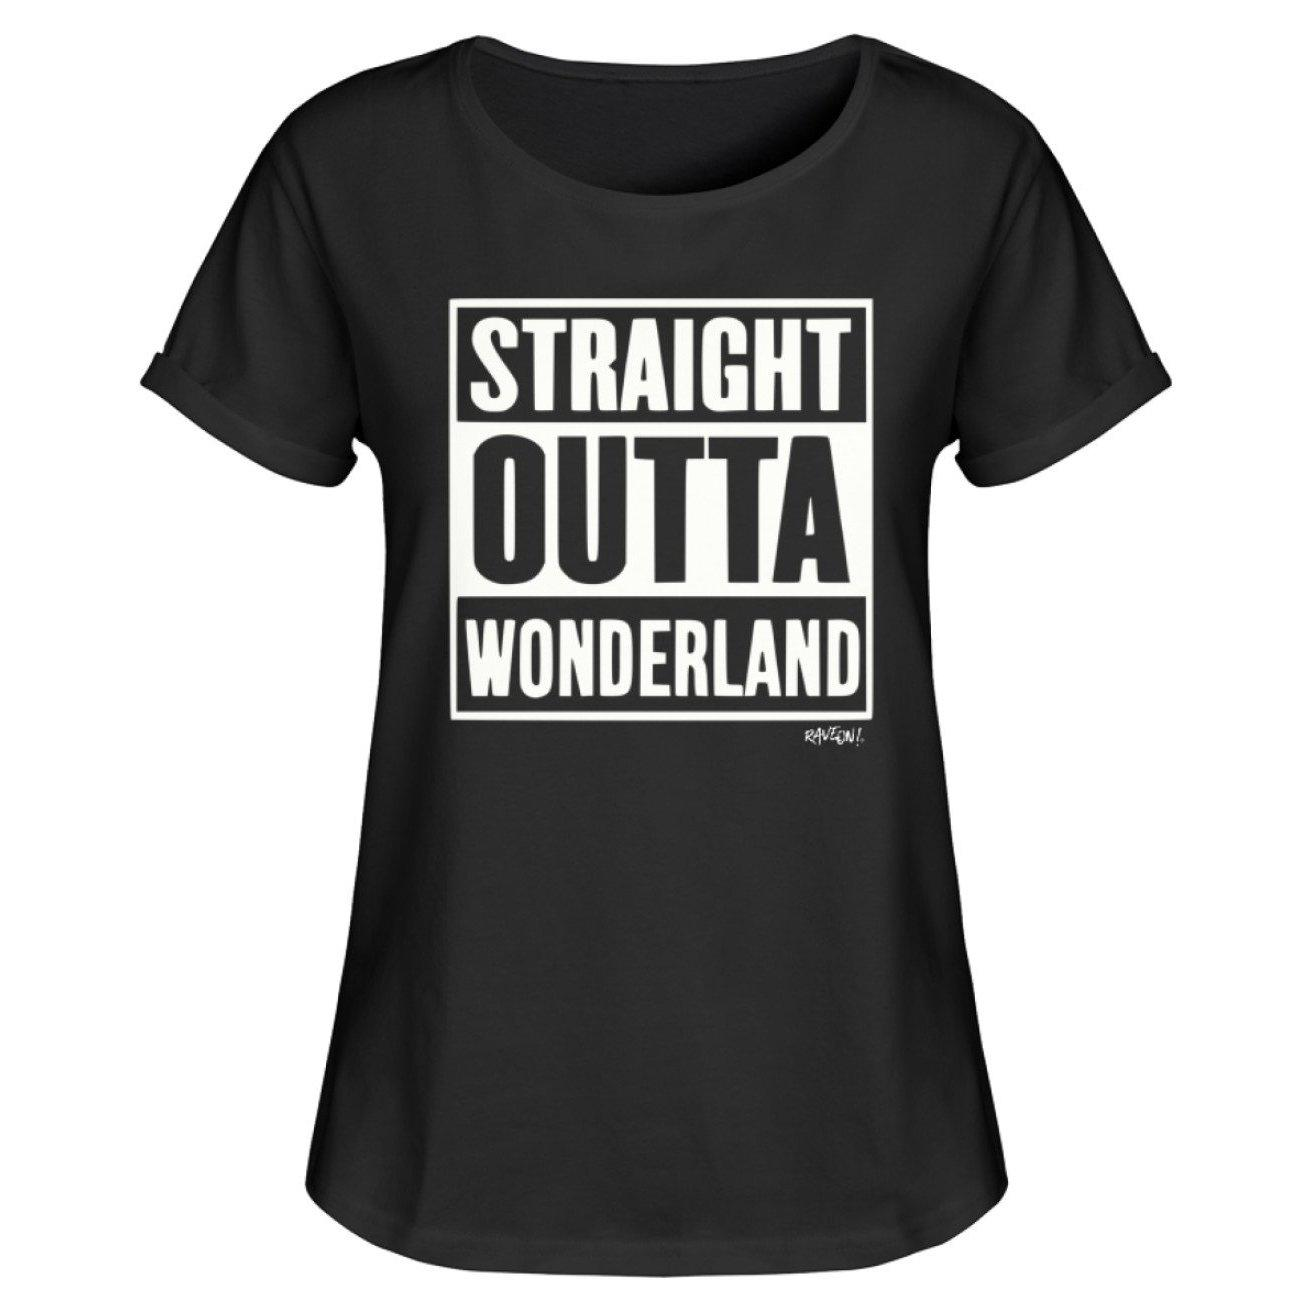 STRAIGHT OUTTA WONDERLAND - Rave On!® - Damen RollUp Shirt Women Rollup Shirt Black / S - Rave On!® der Club & Techno Szene Shop für Coole Junge Mode Streetwear Style & Fashion Outfits + Sexy Festival 420 Stuff